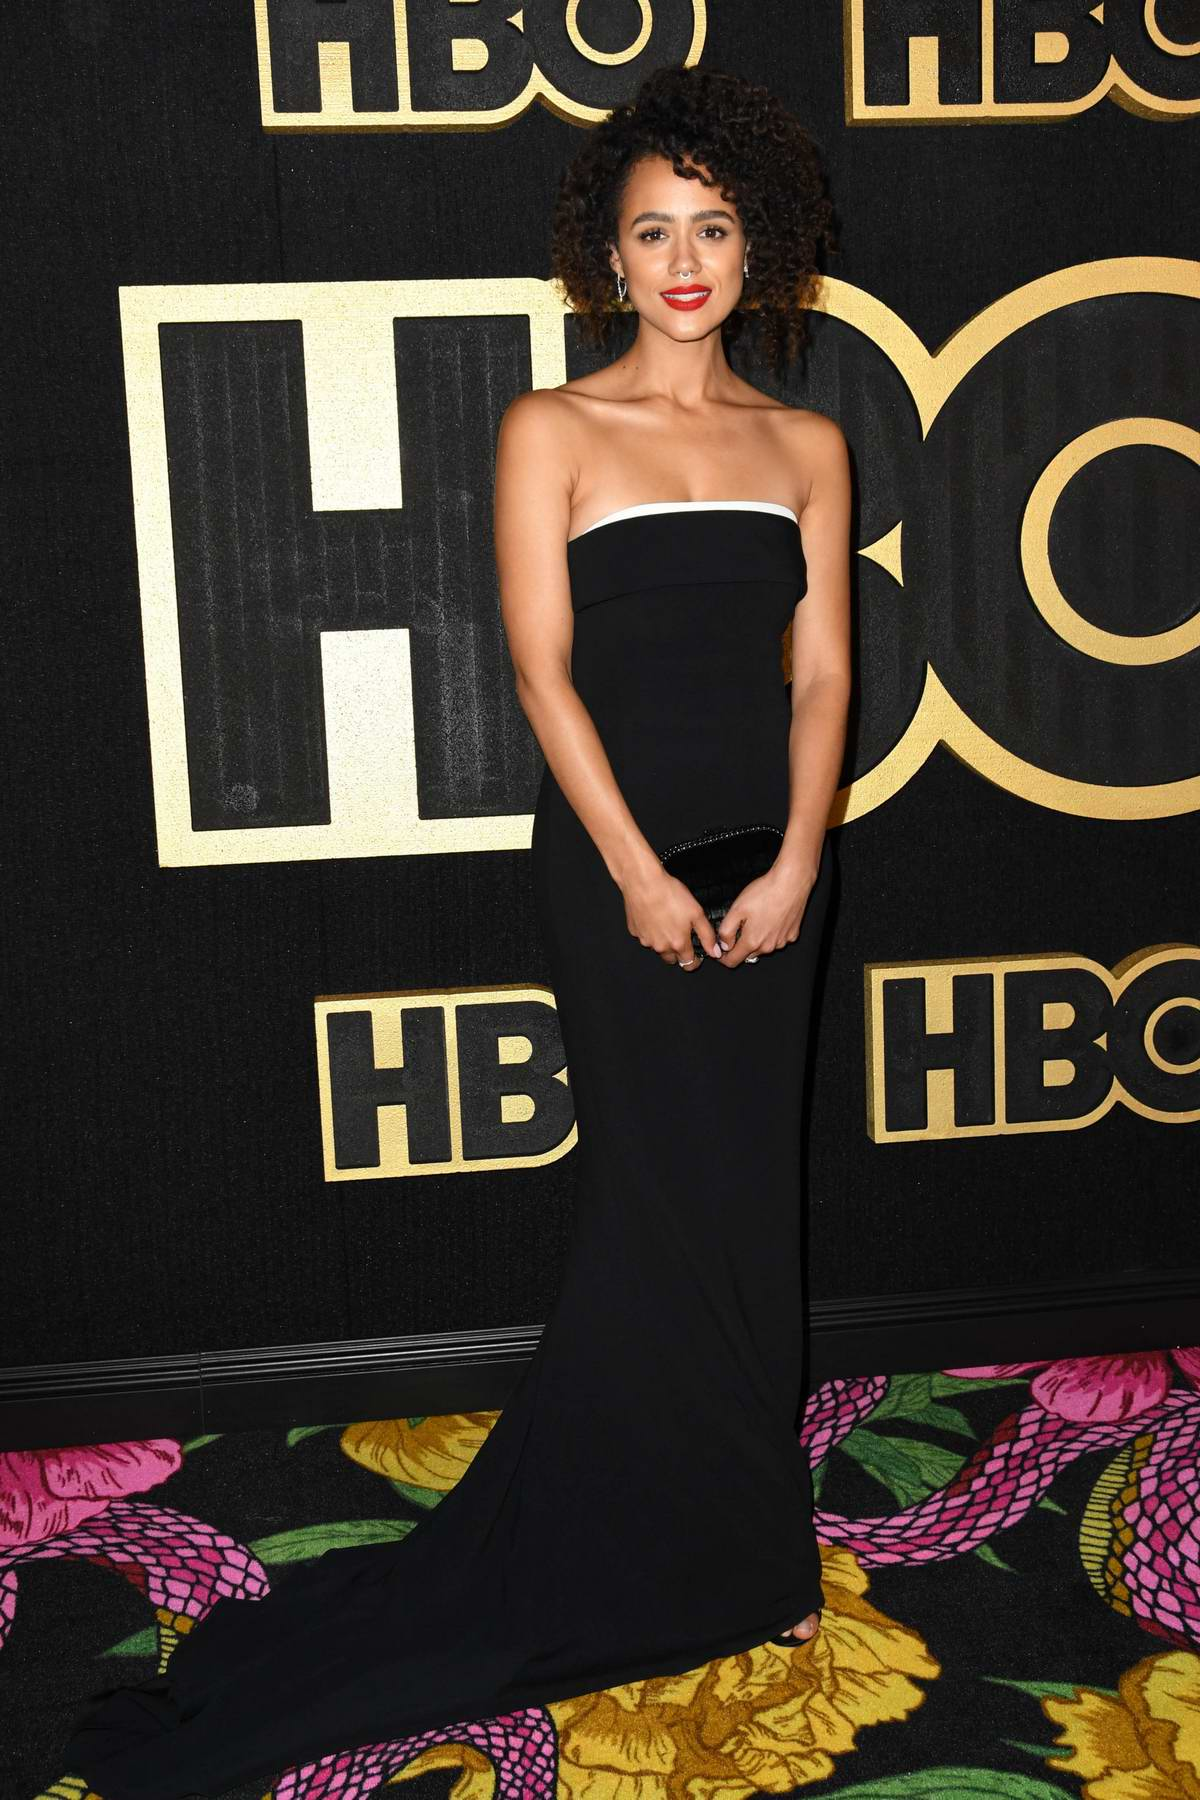 Nathalie Emmanuel attends 70th Primetime Emmy Awards HBO party at the Pacific Design Center in Los Angeles